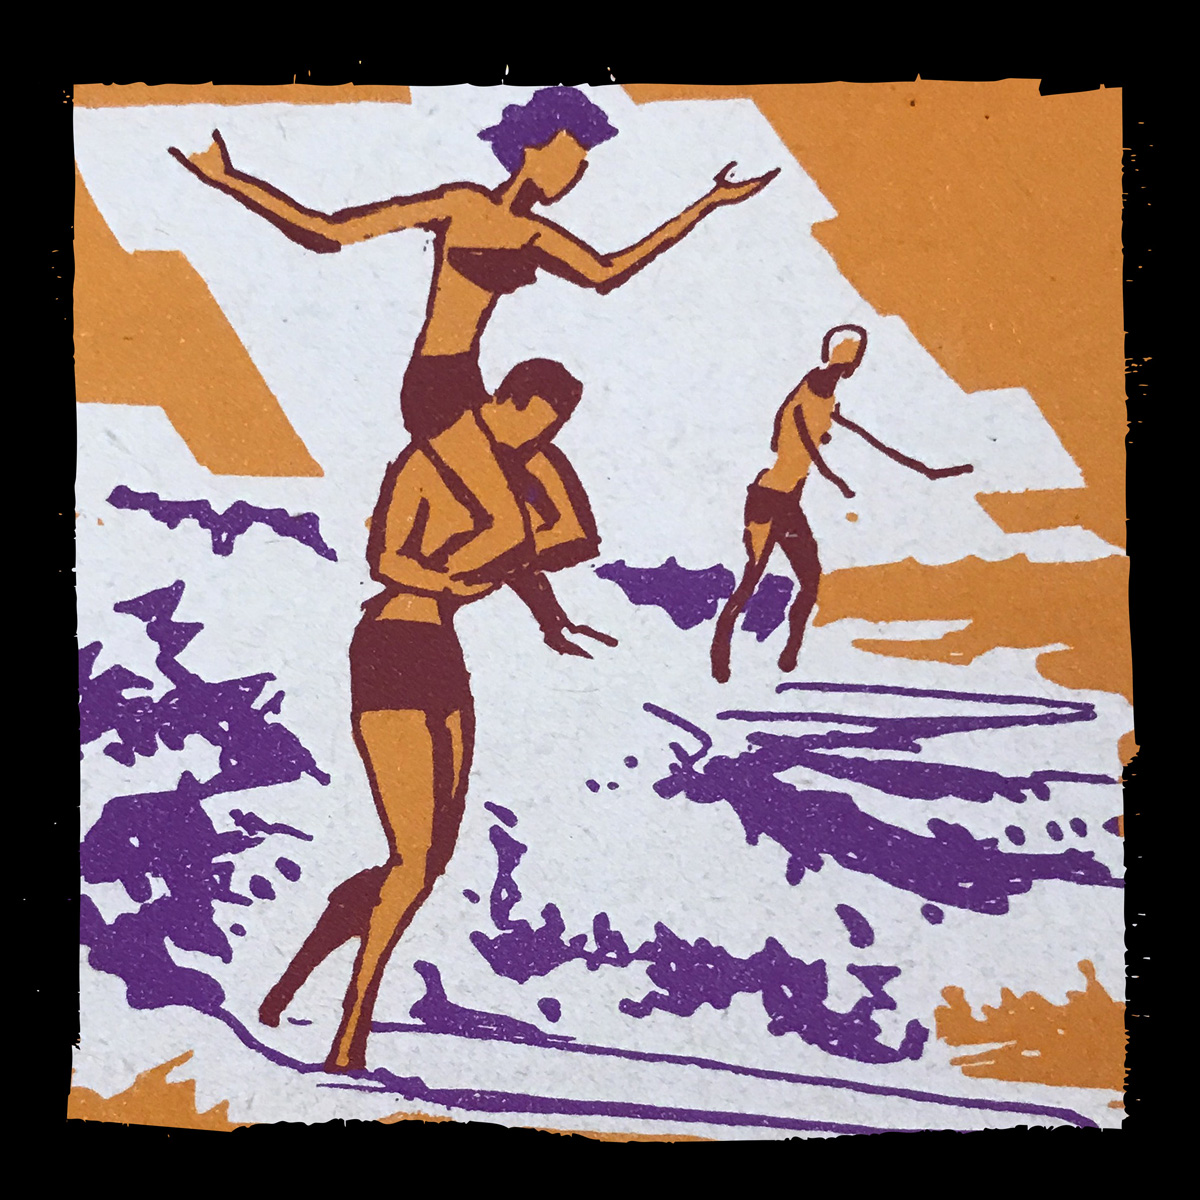 Vintage Waikiki Surfing - Distressed Border Automator for Photoshop